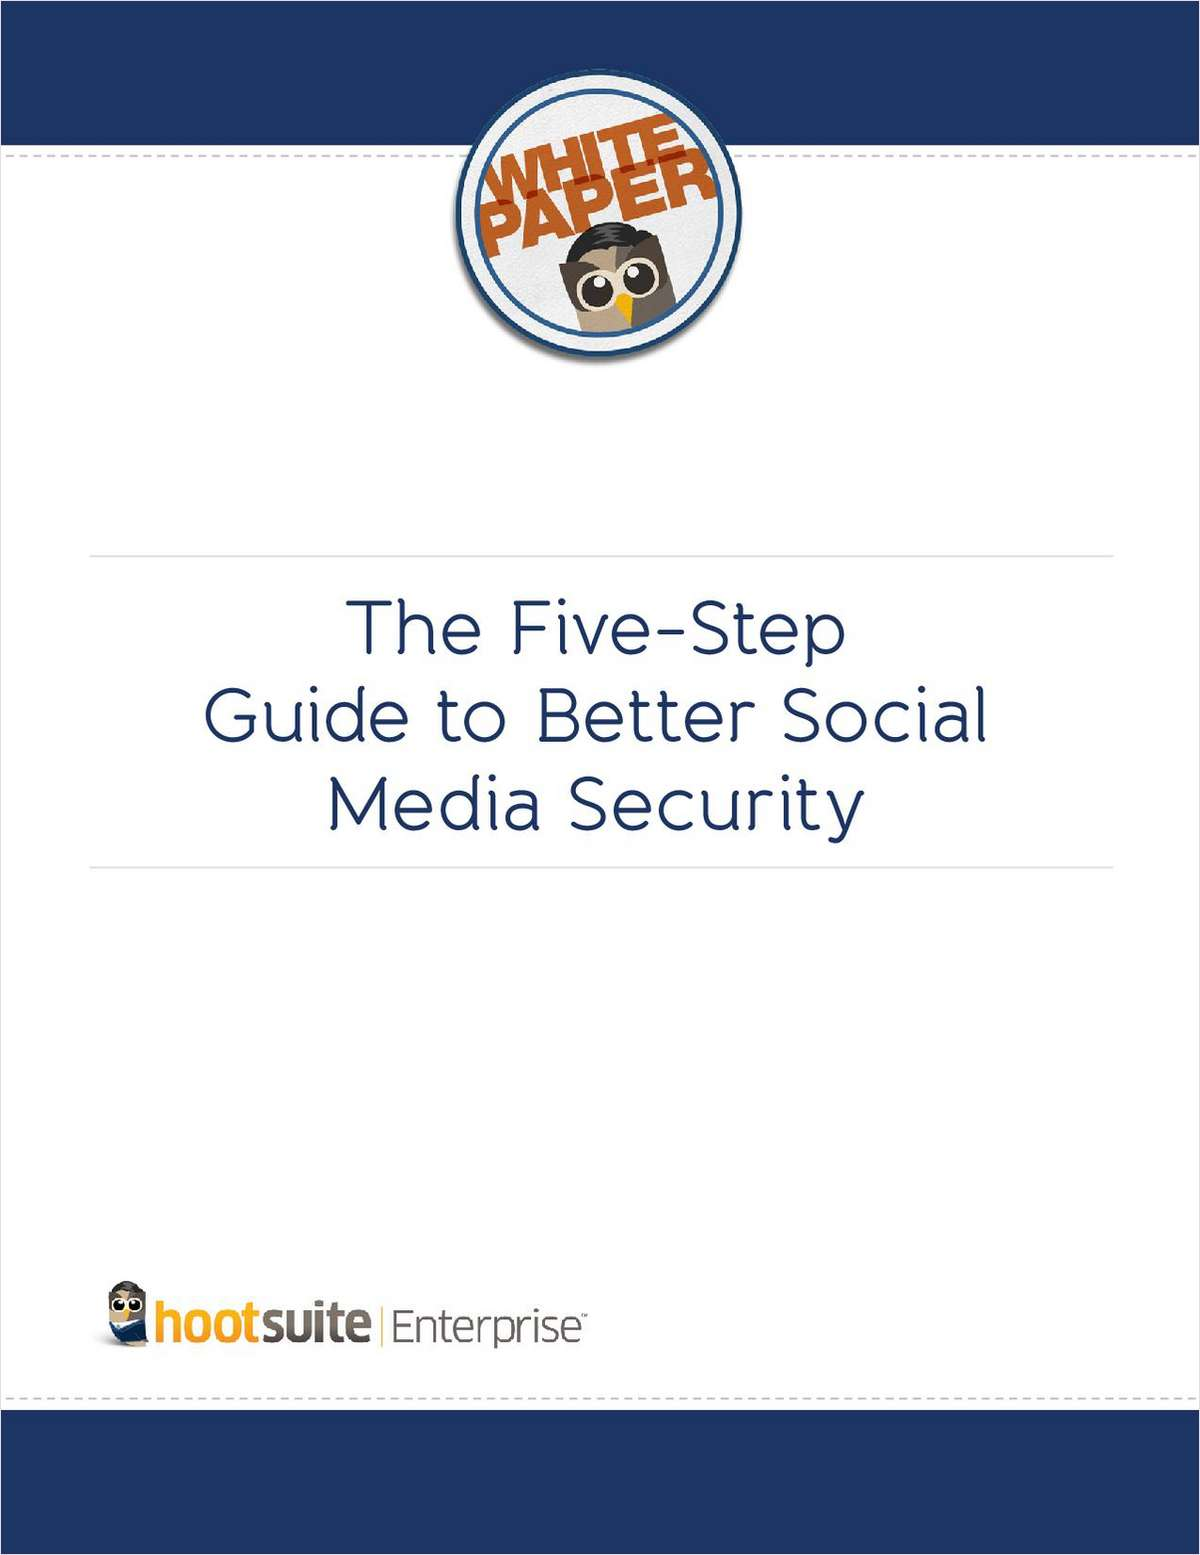 The Five-Step Guide for Better Social Media Security